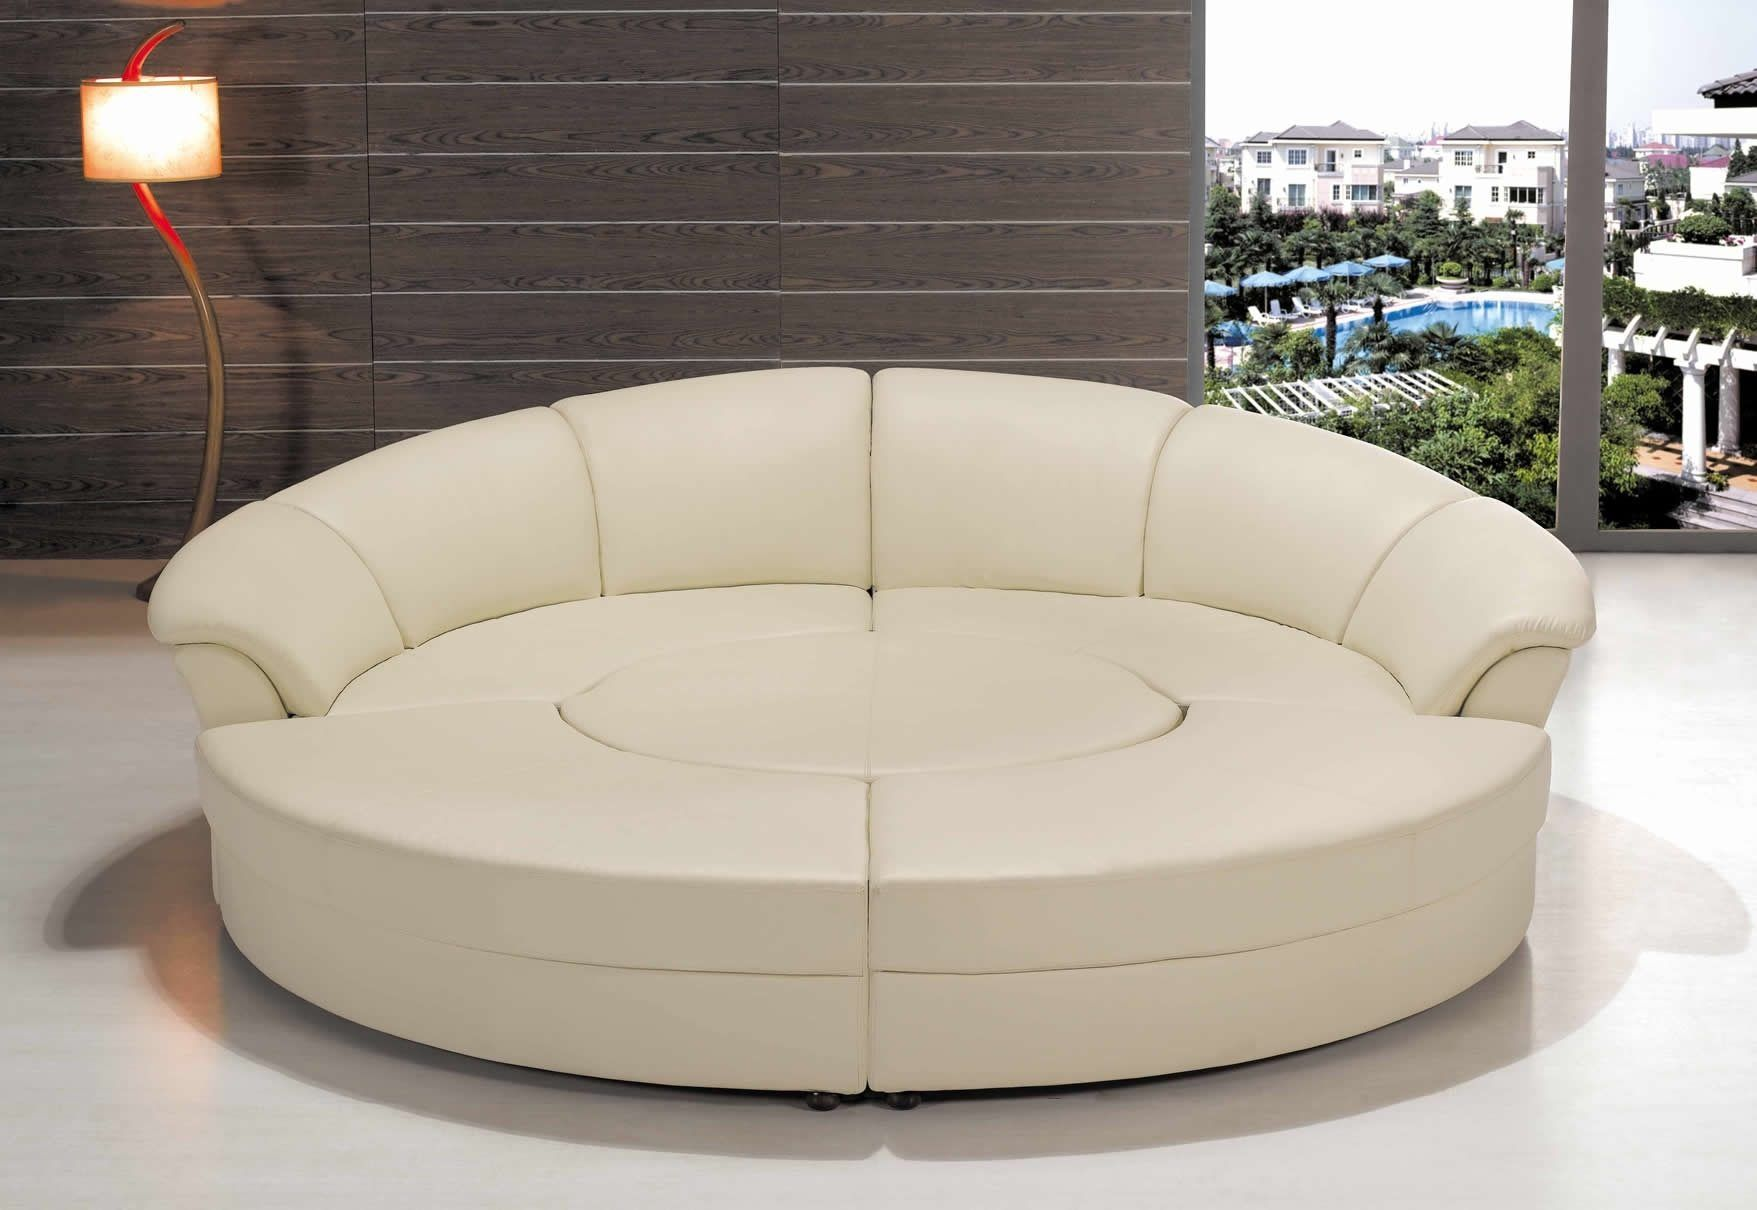 Semi Circle Sofa For Bay Window Brown Leather Accent Pillows Circular Sectional 2 Uk